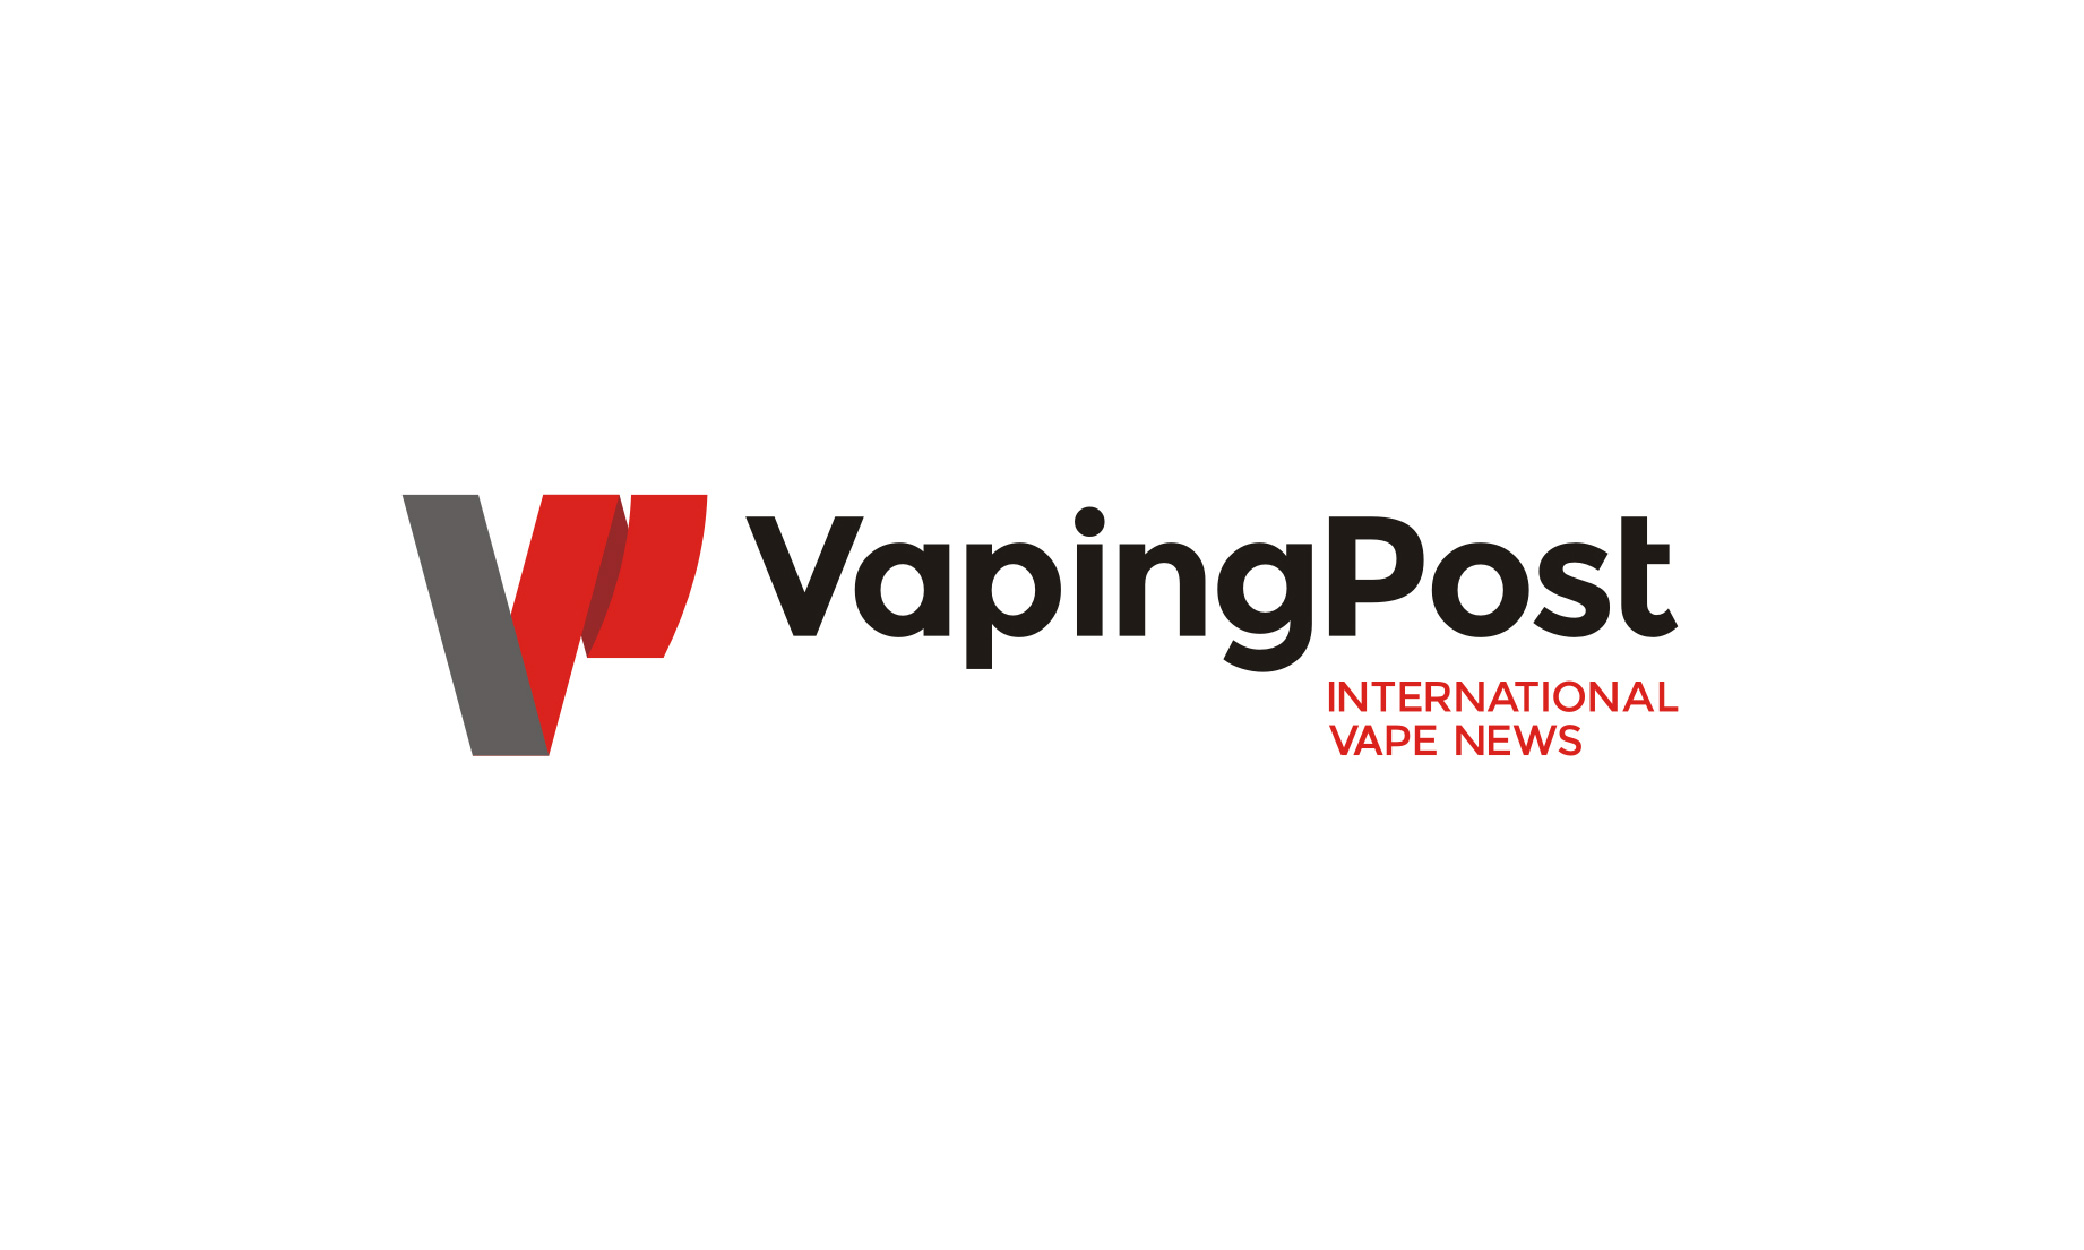 Note Vaping Post : 4/5